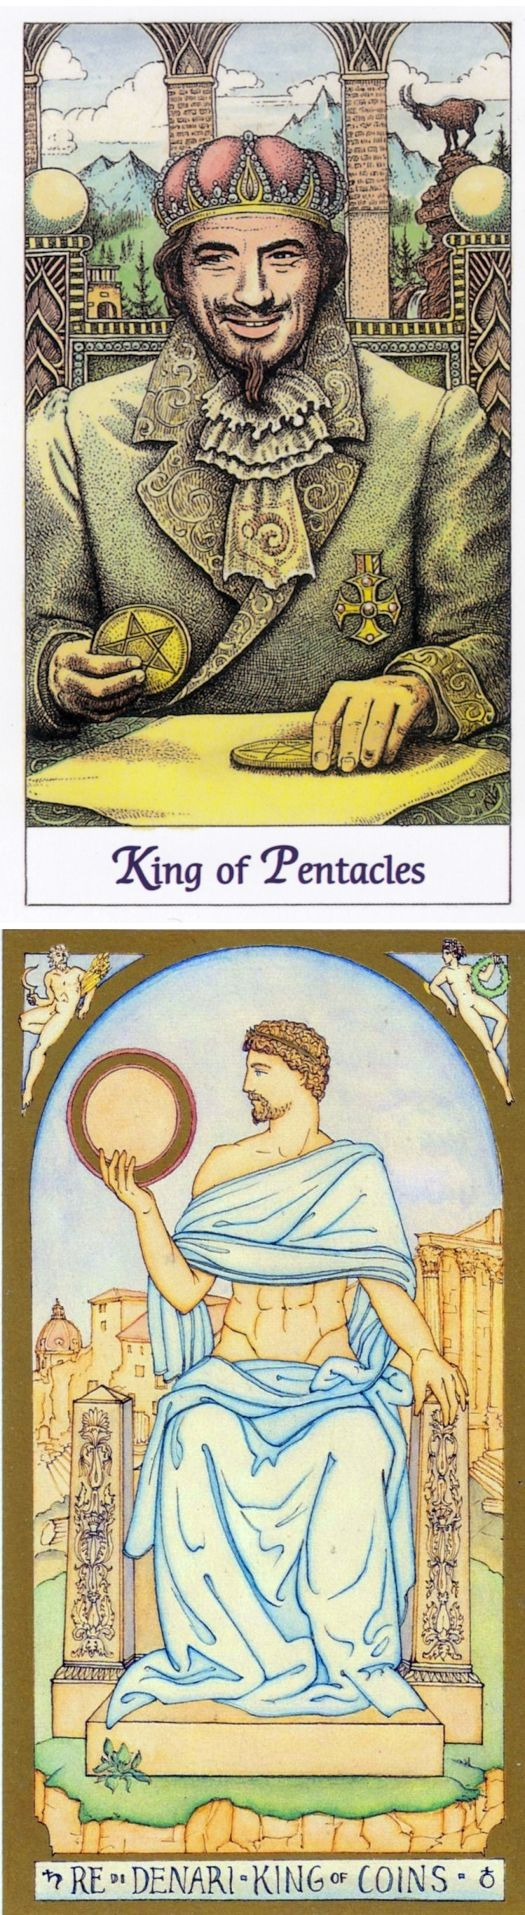 King of Pentacles: security and temptation (reverse). Cosmic Tarot deck and Renaissance Tarot deck: taro on line gratis, free accurate tarot vs ask free astrology question instant answer. Best 2017 ritual symbols and tarot spreads love. #chariot #ilovemywitchyways #backtonature # #fool